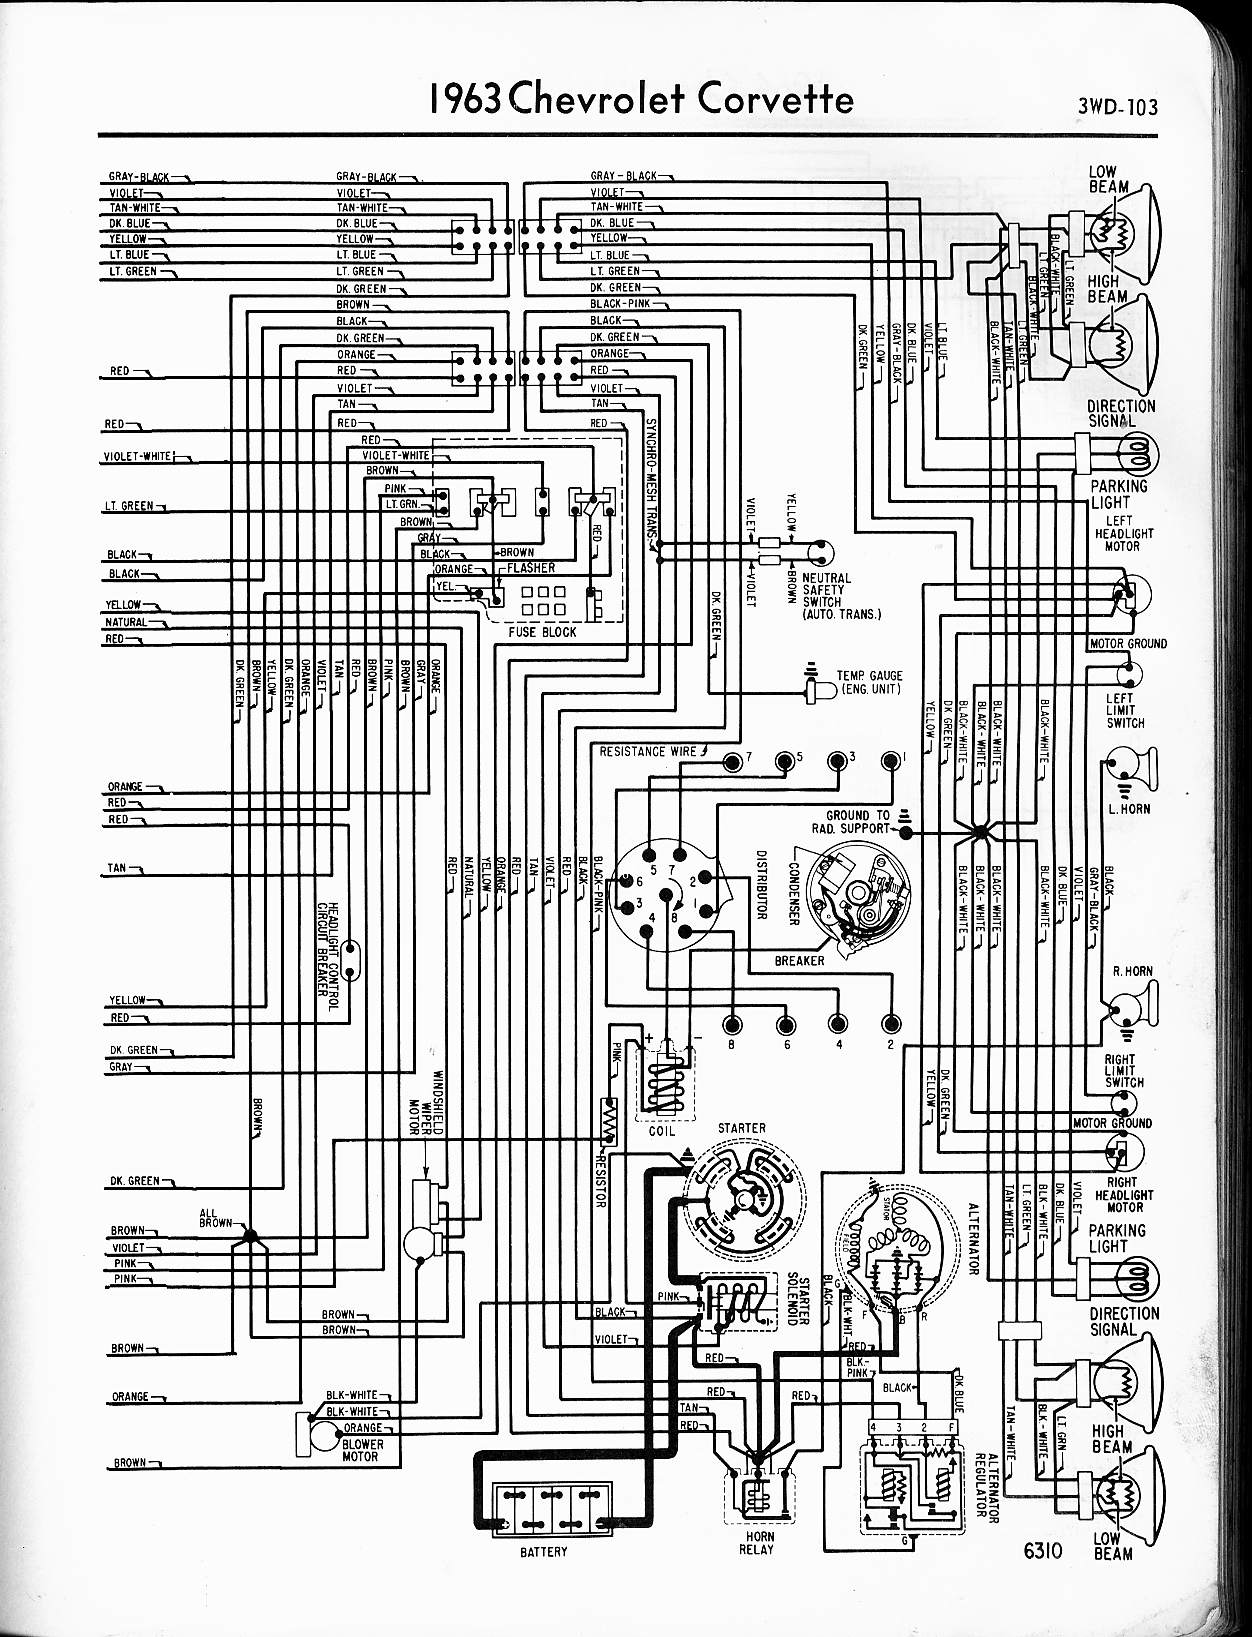 57 65 Chevy Wiring Diagrams 2002 Corvette Brake Light Wiring Corvette  Headlight Wiring Diagram